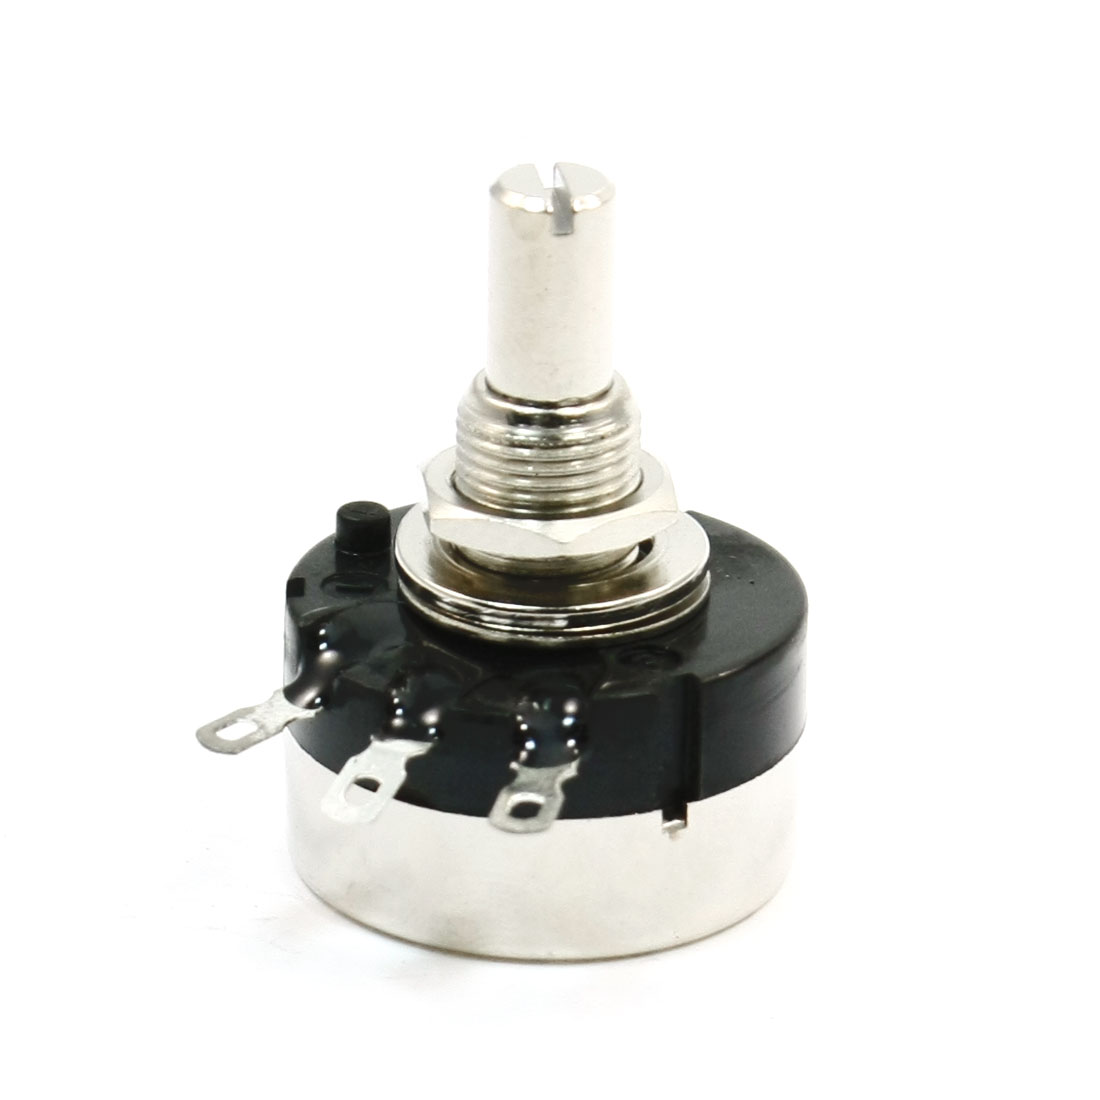 RV24YN 20S/B502 5K Ohm Carbon Composition Rotary Taper Potentiometer